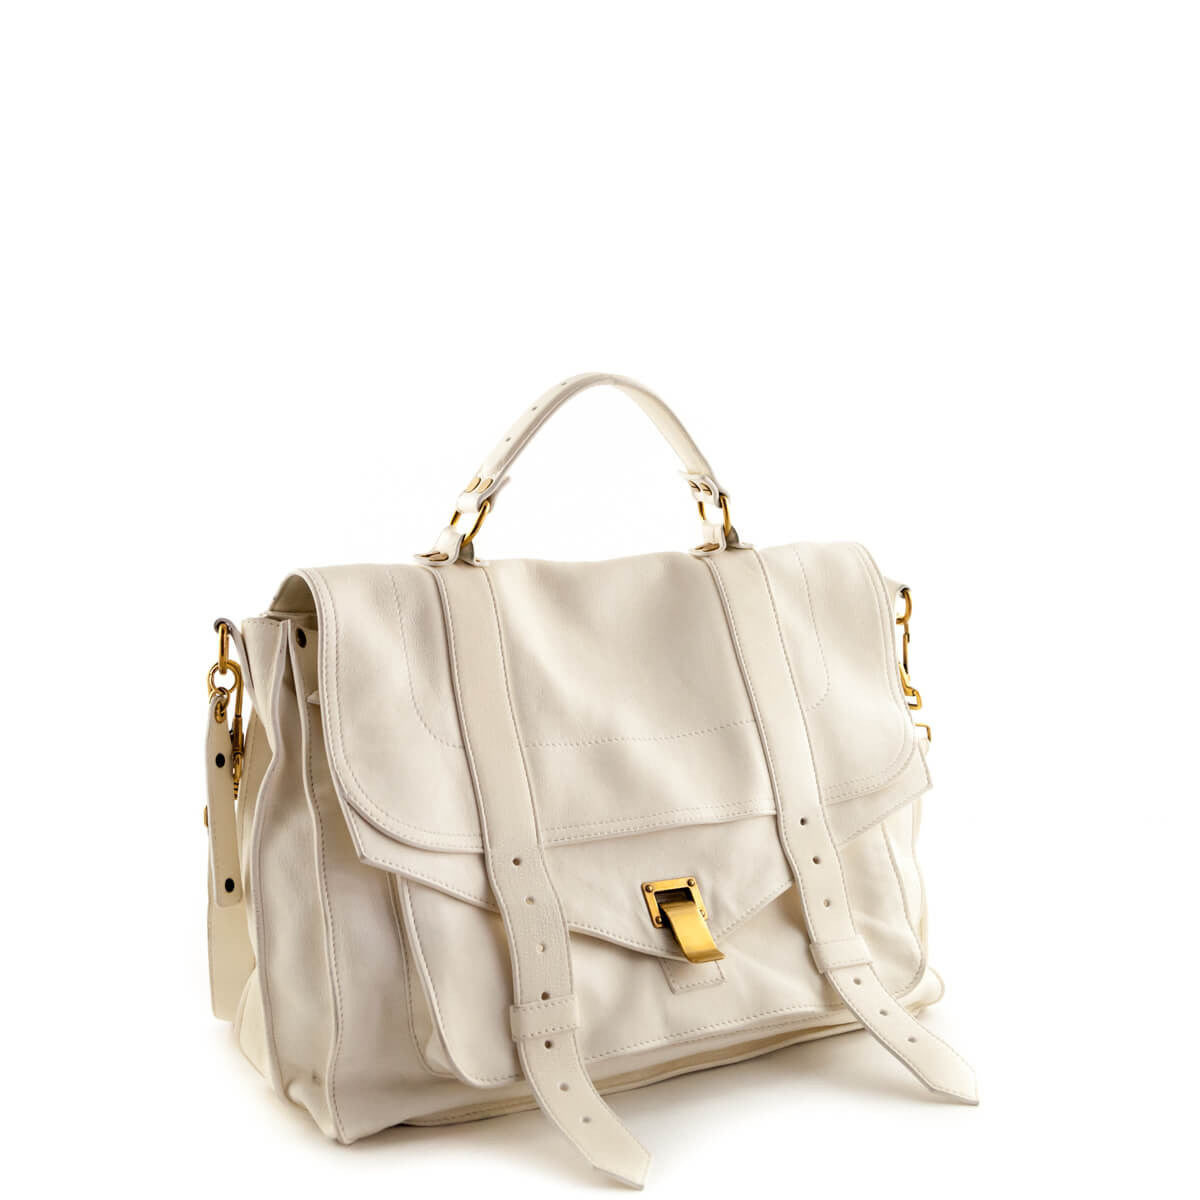 4b35bf55910e ... Proenza Schouler Bone Lambskin Large PS1 Messenger Bag - LOVE that BAG  - Preowned Authentic Designer ...